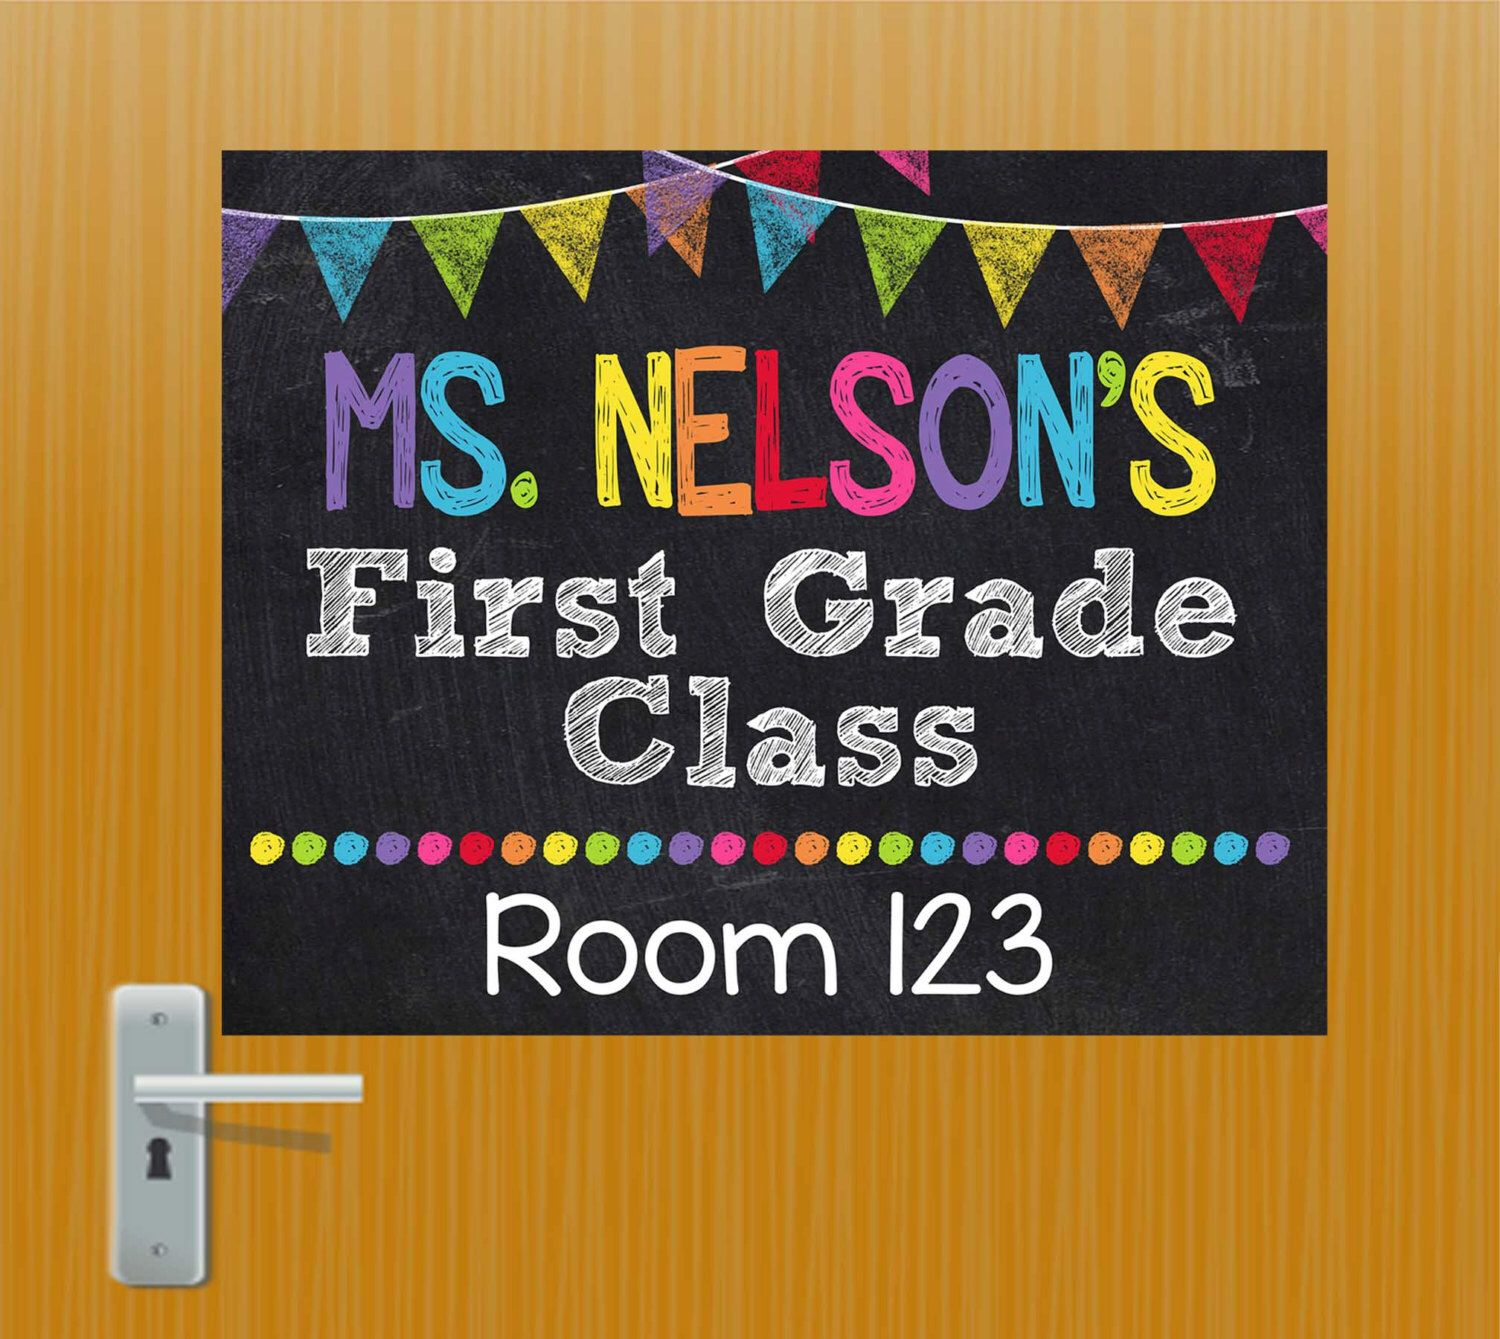 Teacher Door Sign, Personalized Teacher Sign, Classroom Door Sign, Teacher Classroom Decor, Teacher Name Sign, Teacher Christmas Gift, Room by KidsPartyPrintables on Etsy https://www.etsy.com/listing/241084179/teacher-door-sign-personalized-teacher